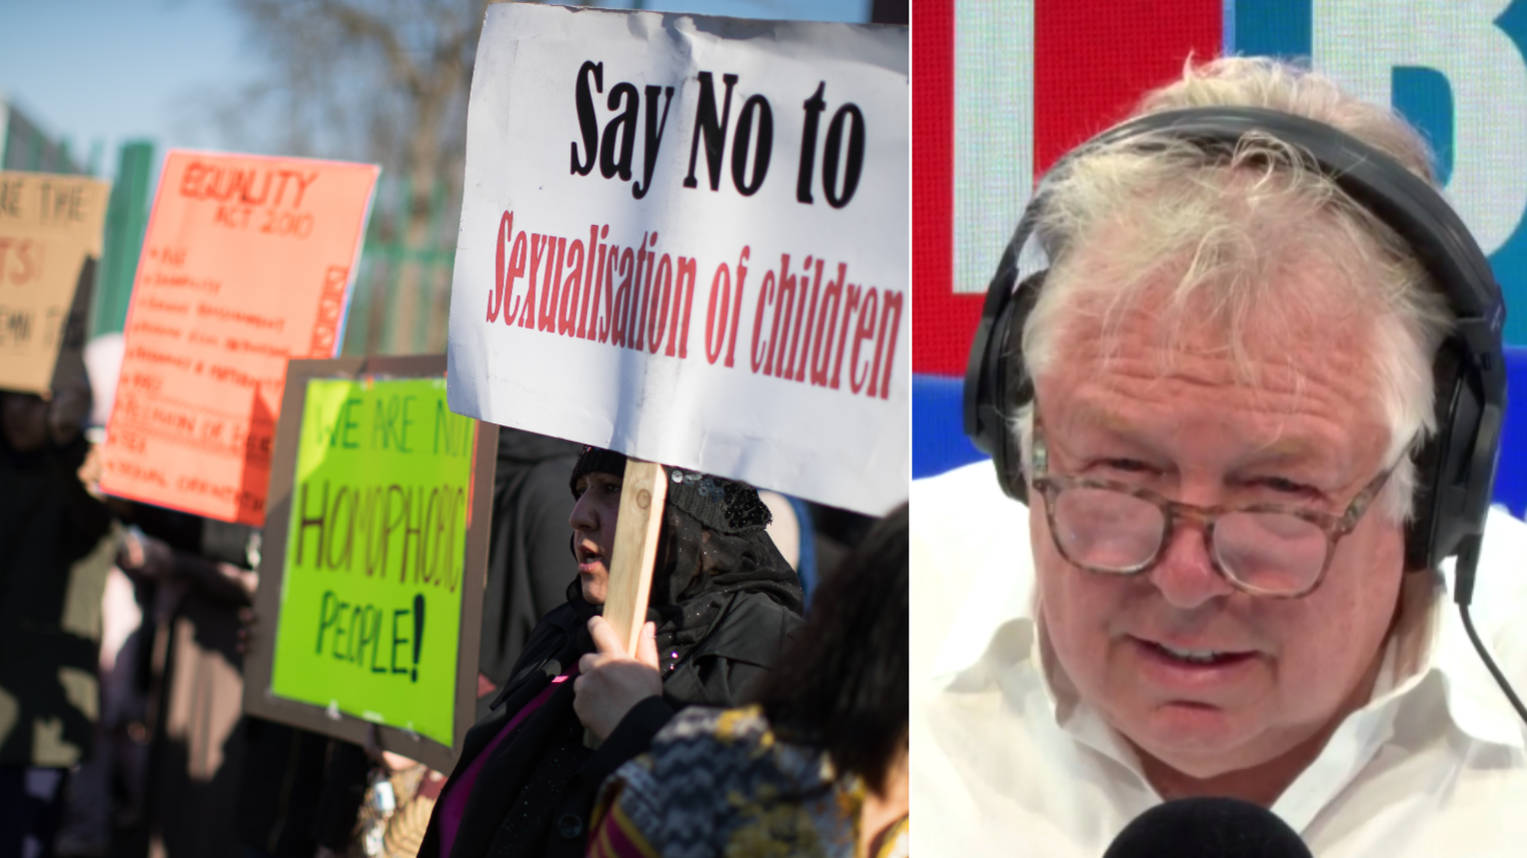 Nick Ferrari Schools Man Leading Protests Against LGBT